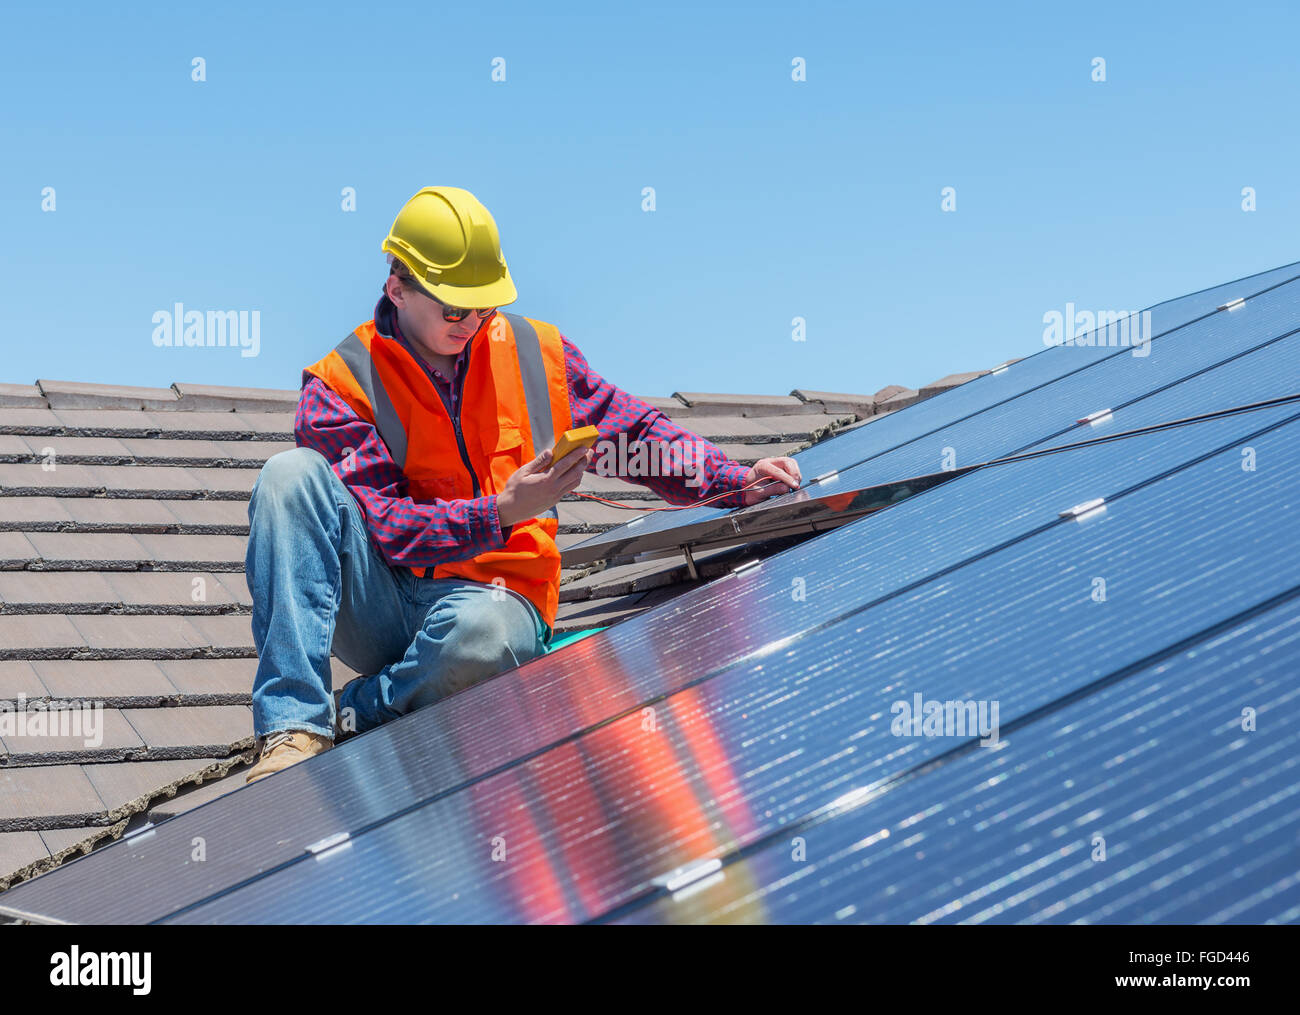 young worker checking solar panels on house roof - Stock Image